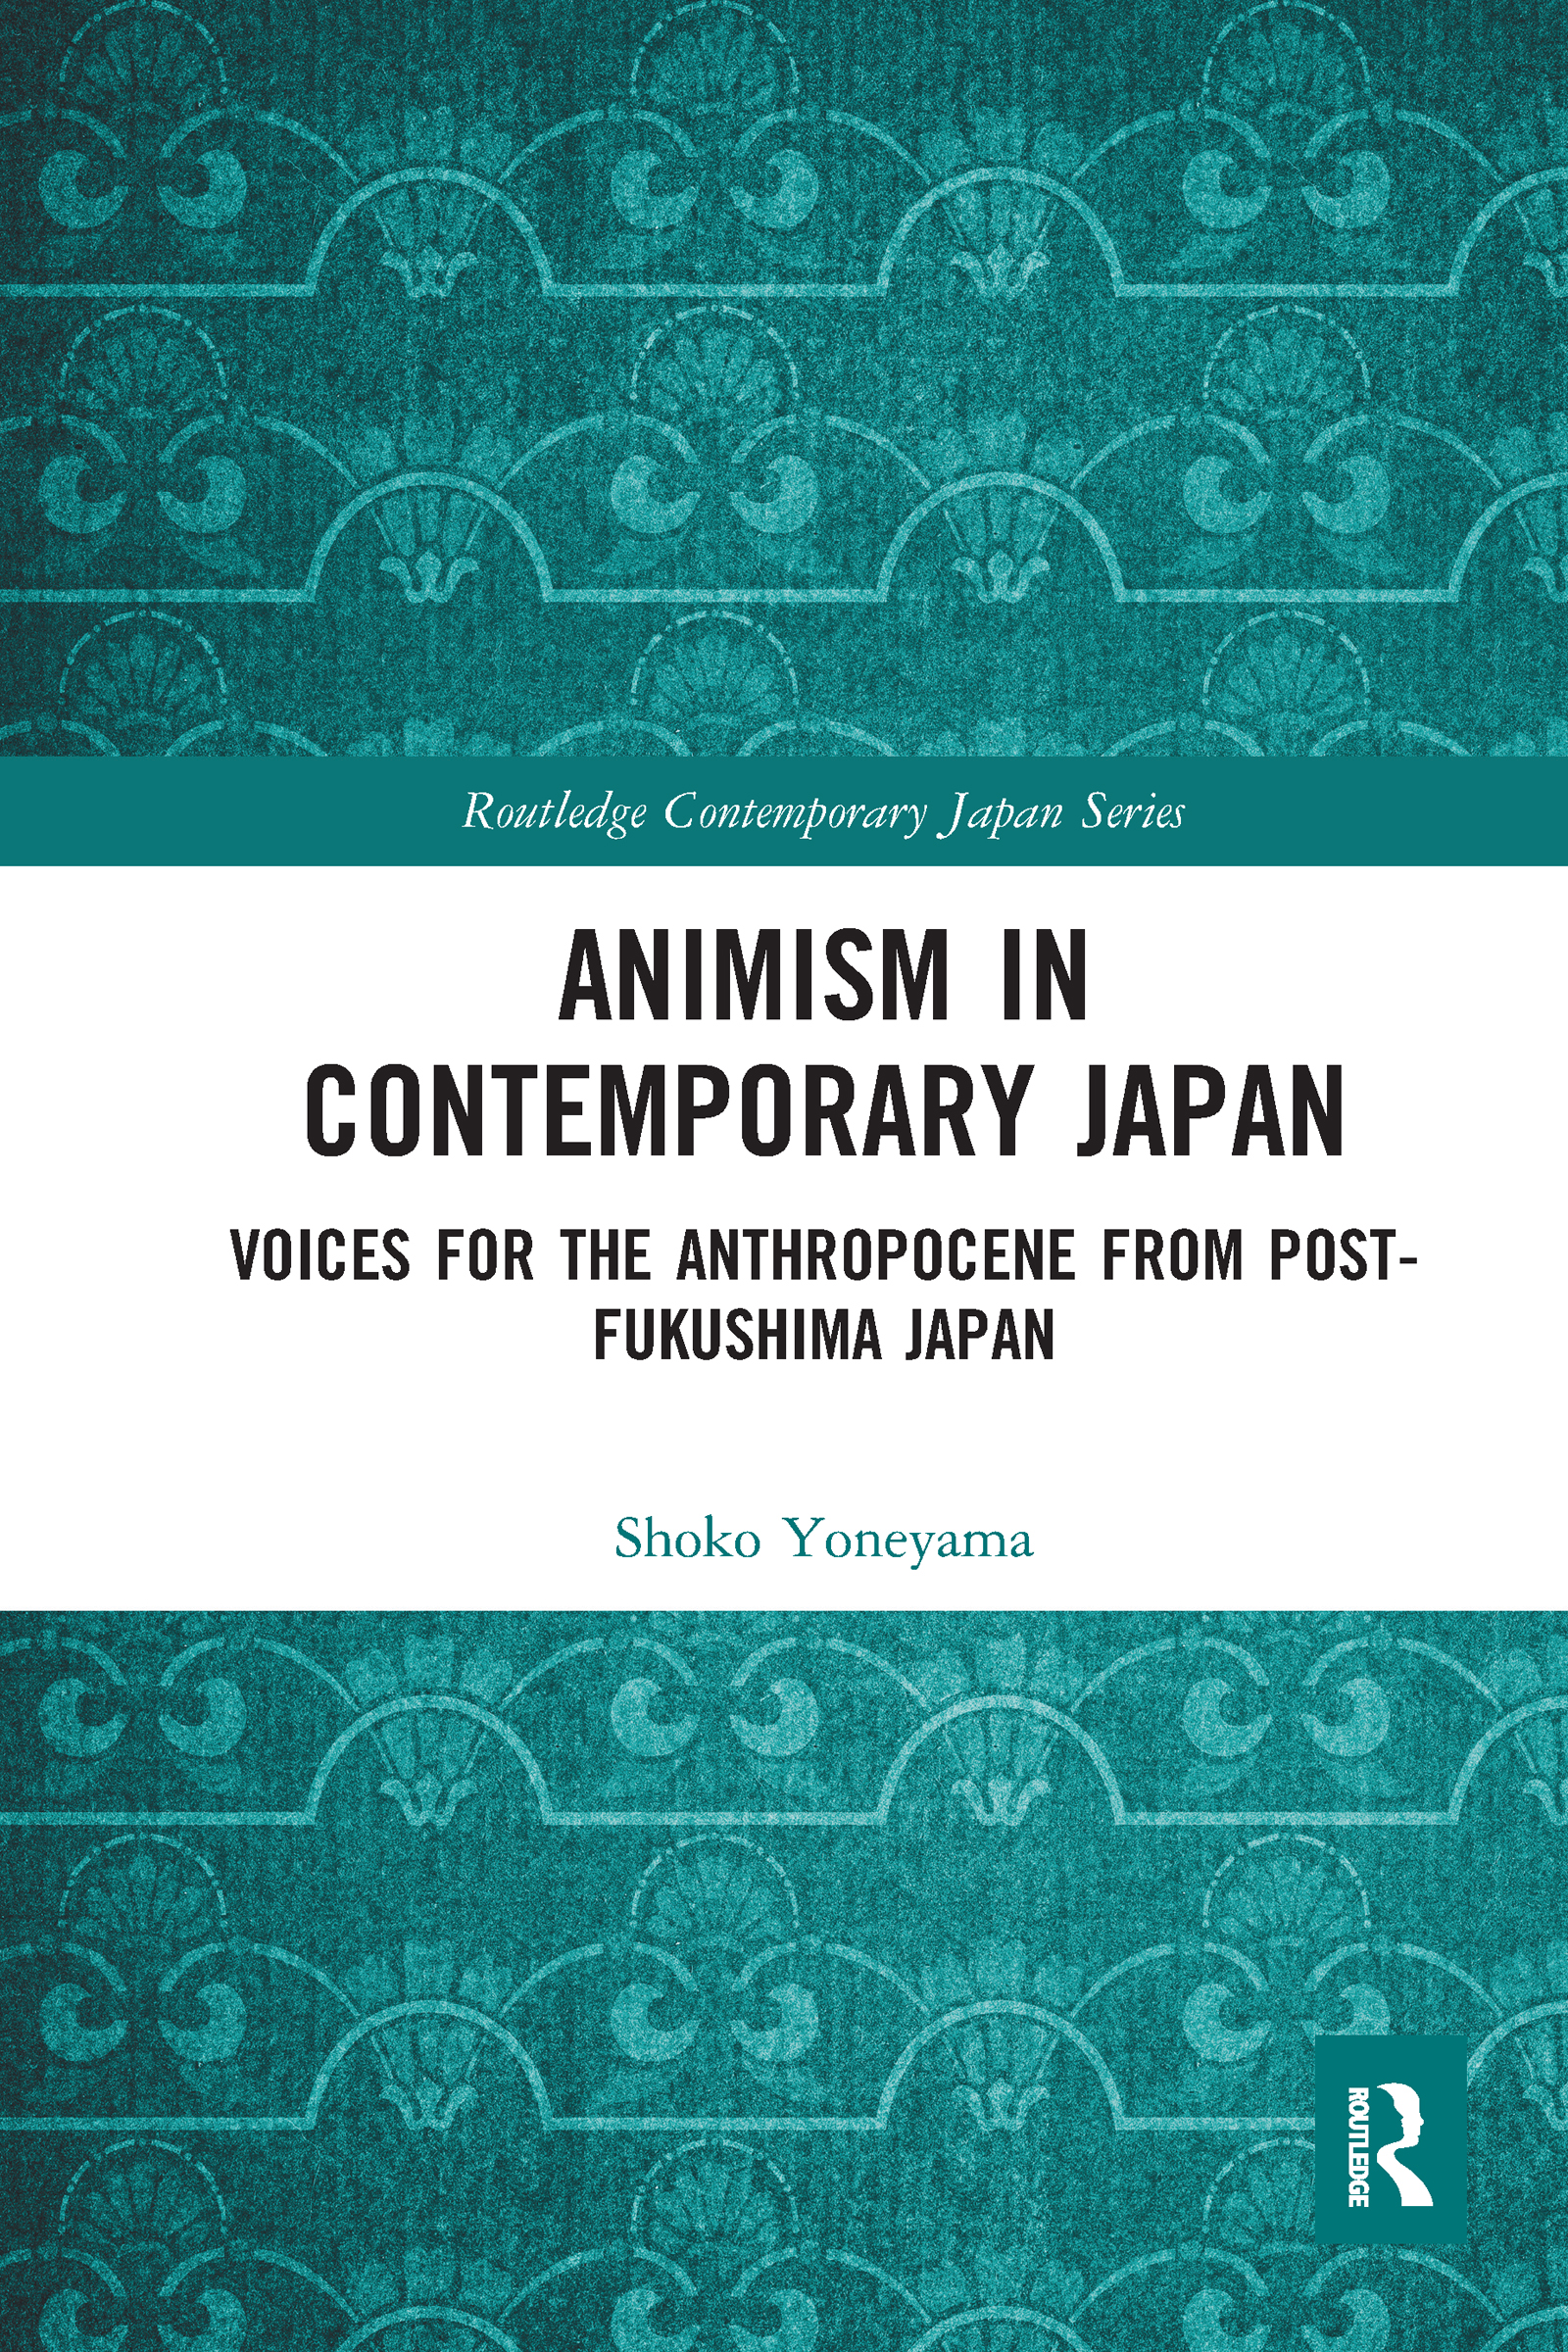 Animism in Contemporary Japan